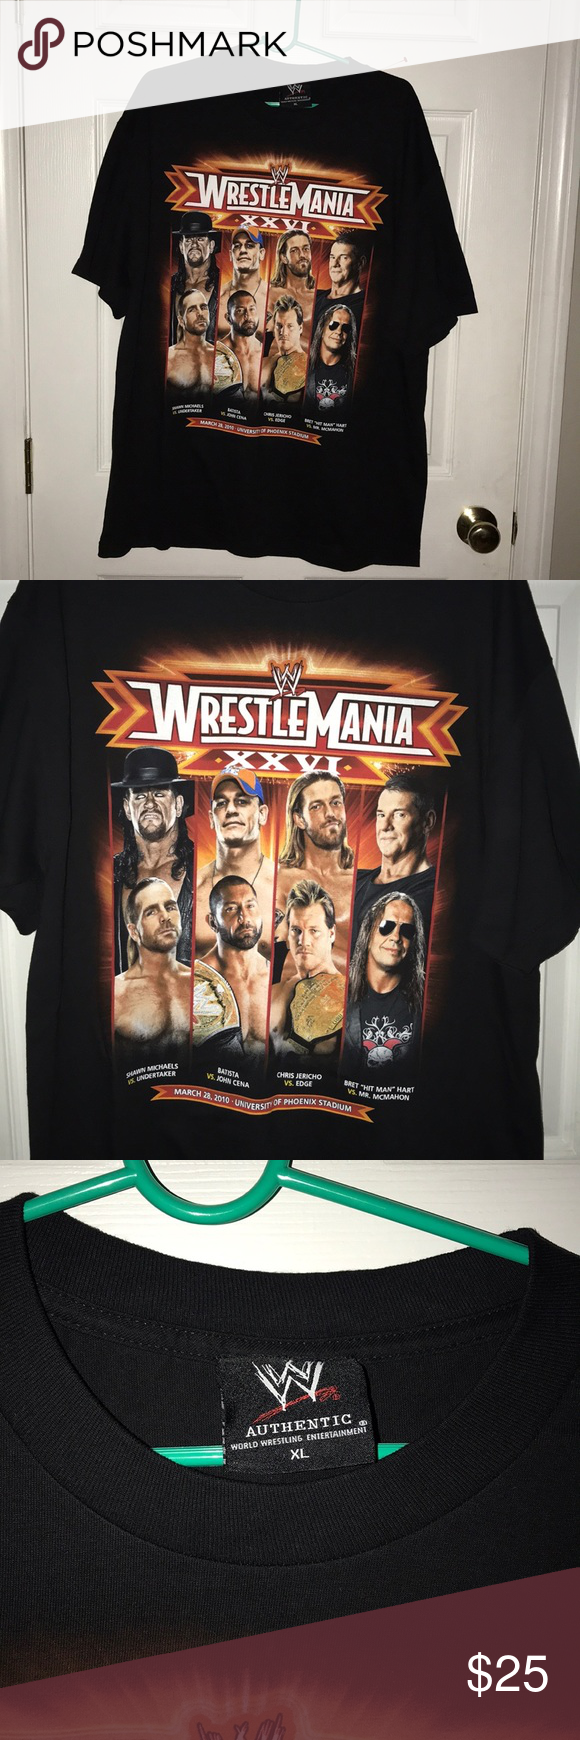 WWE Wrestlemania 2010 black t shirt size XL AZ Black tshirt